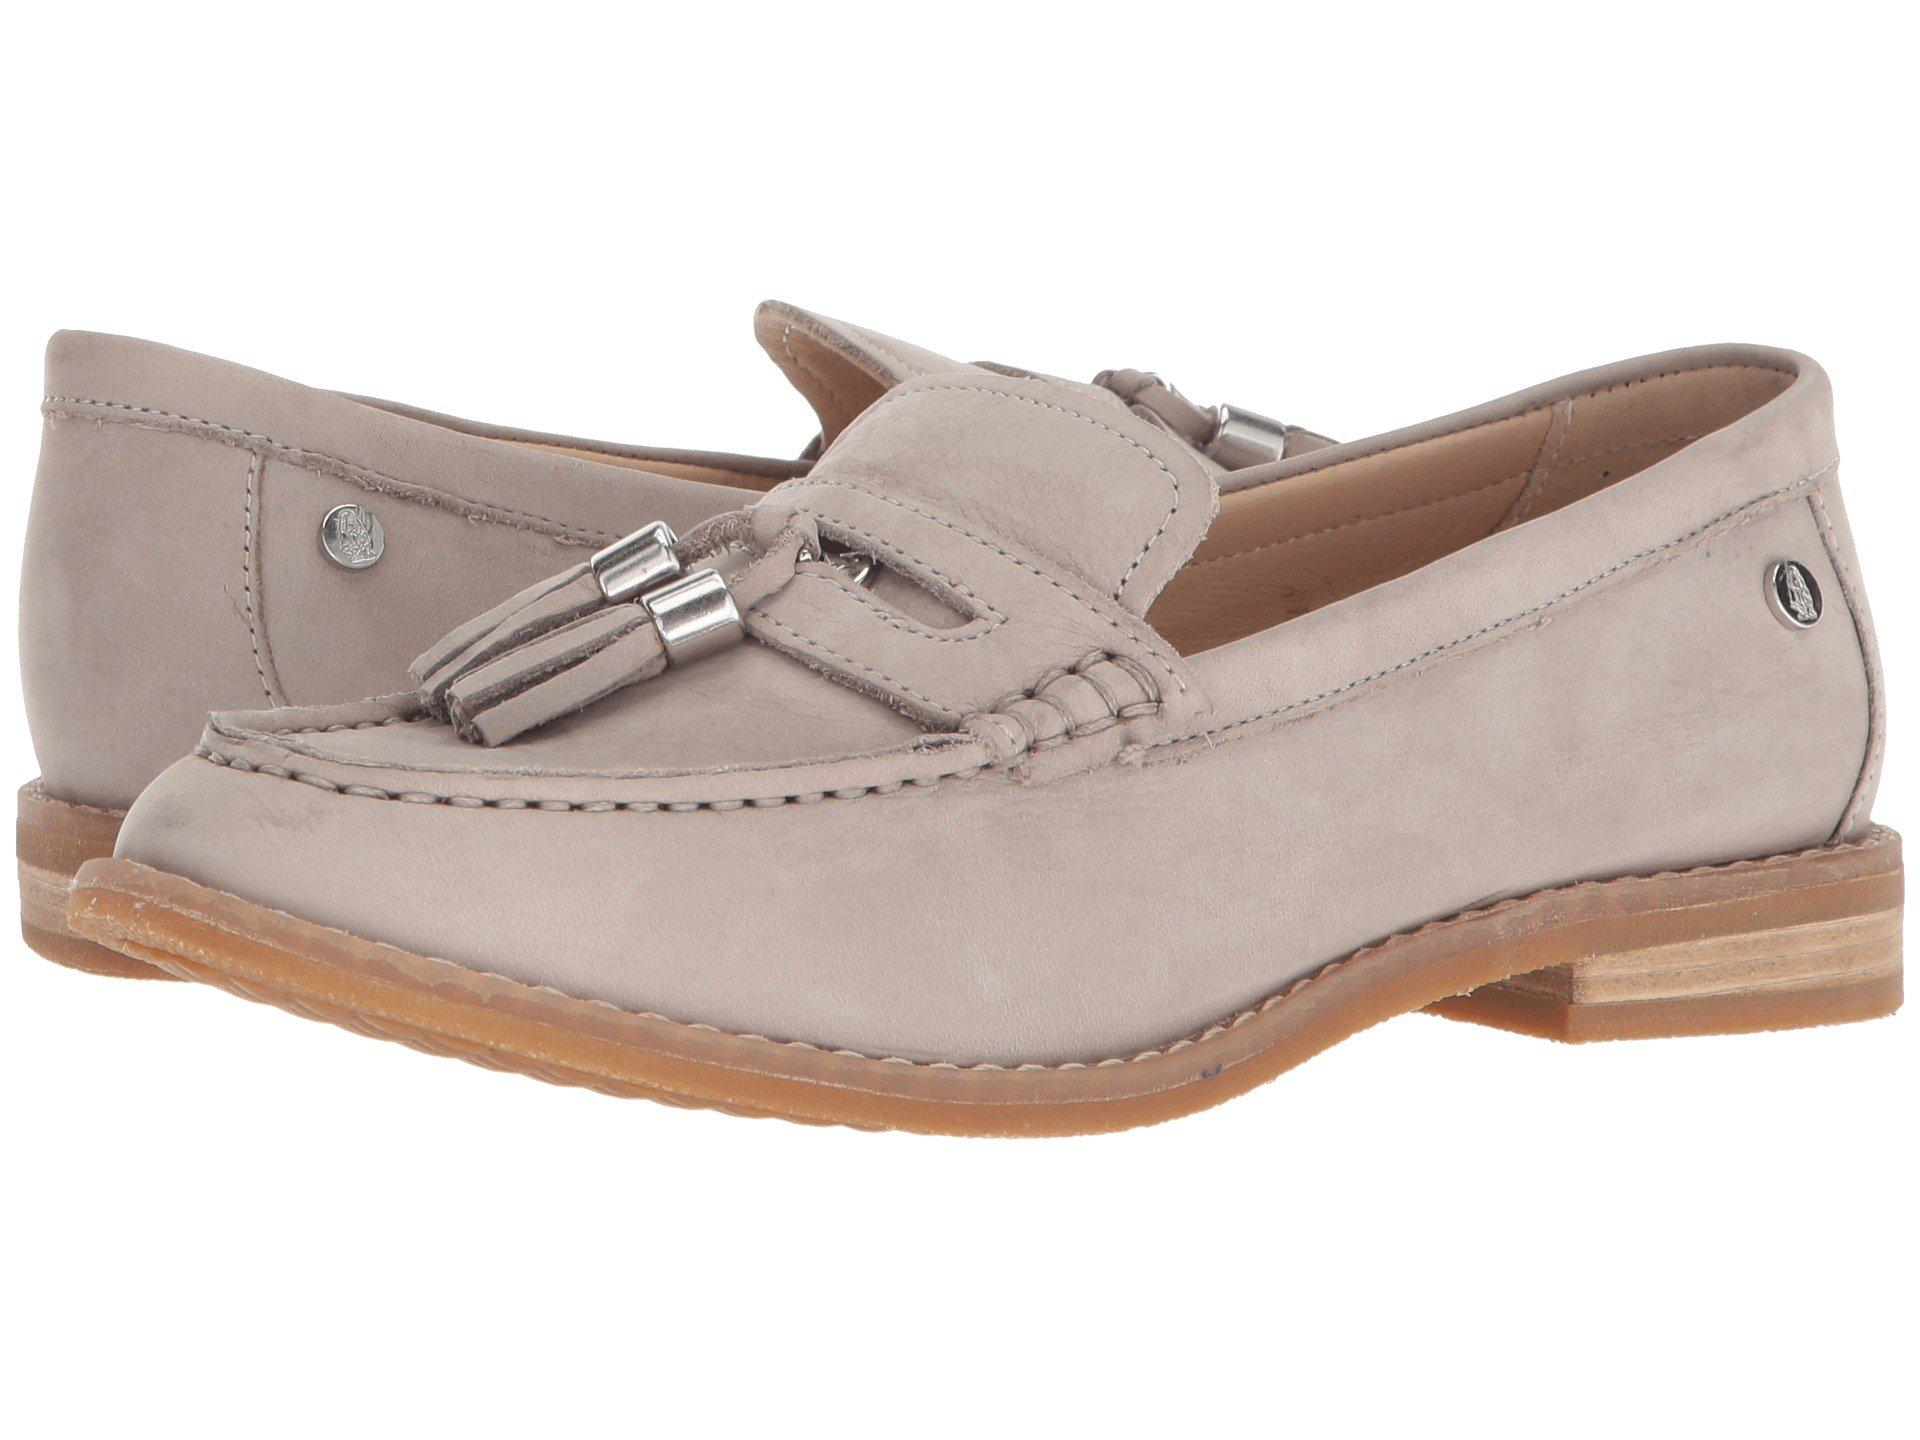 1731fccf034 Lyst - Hush Puppies Chardon Penny Loafer in Gray - Save 51%